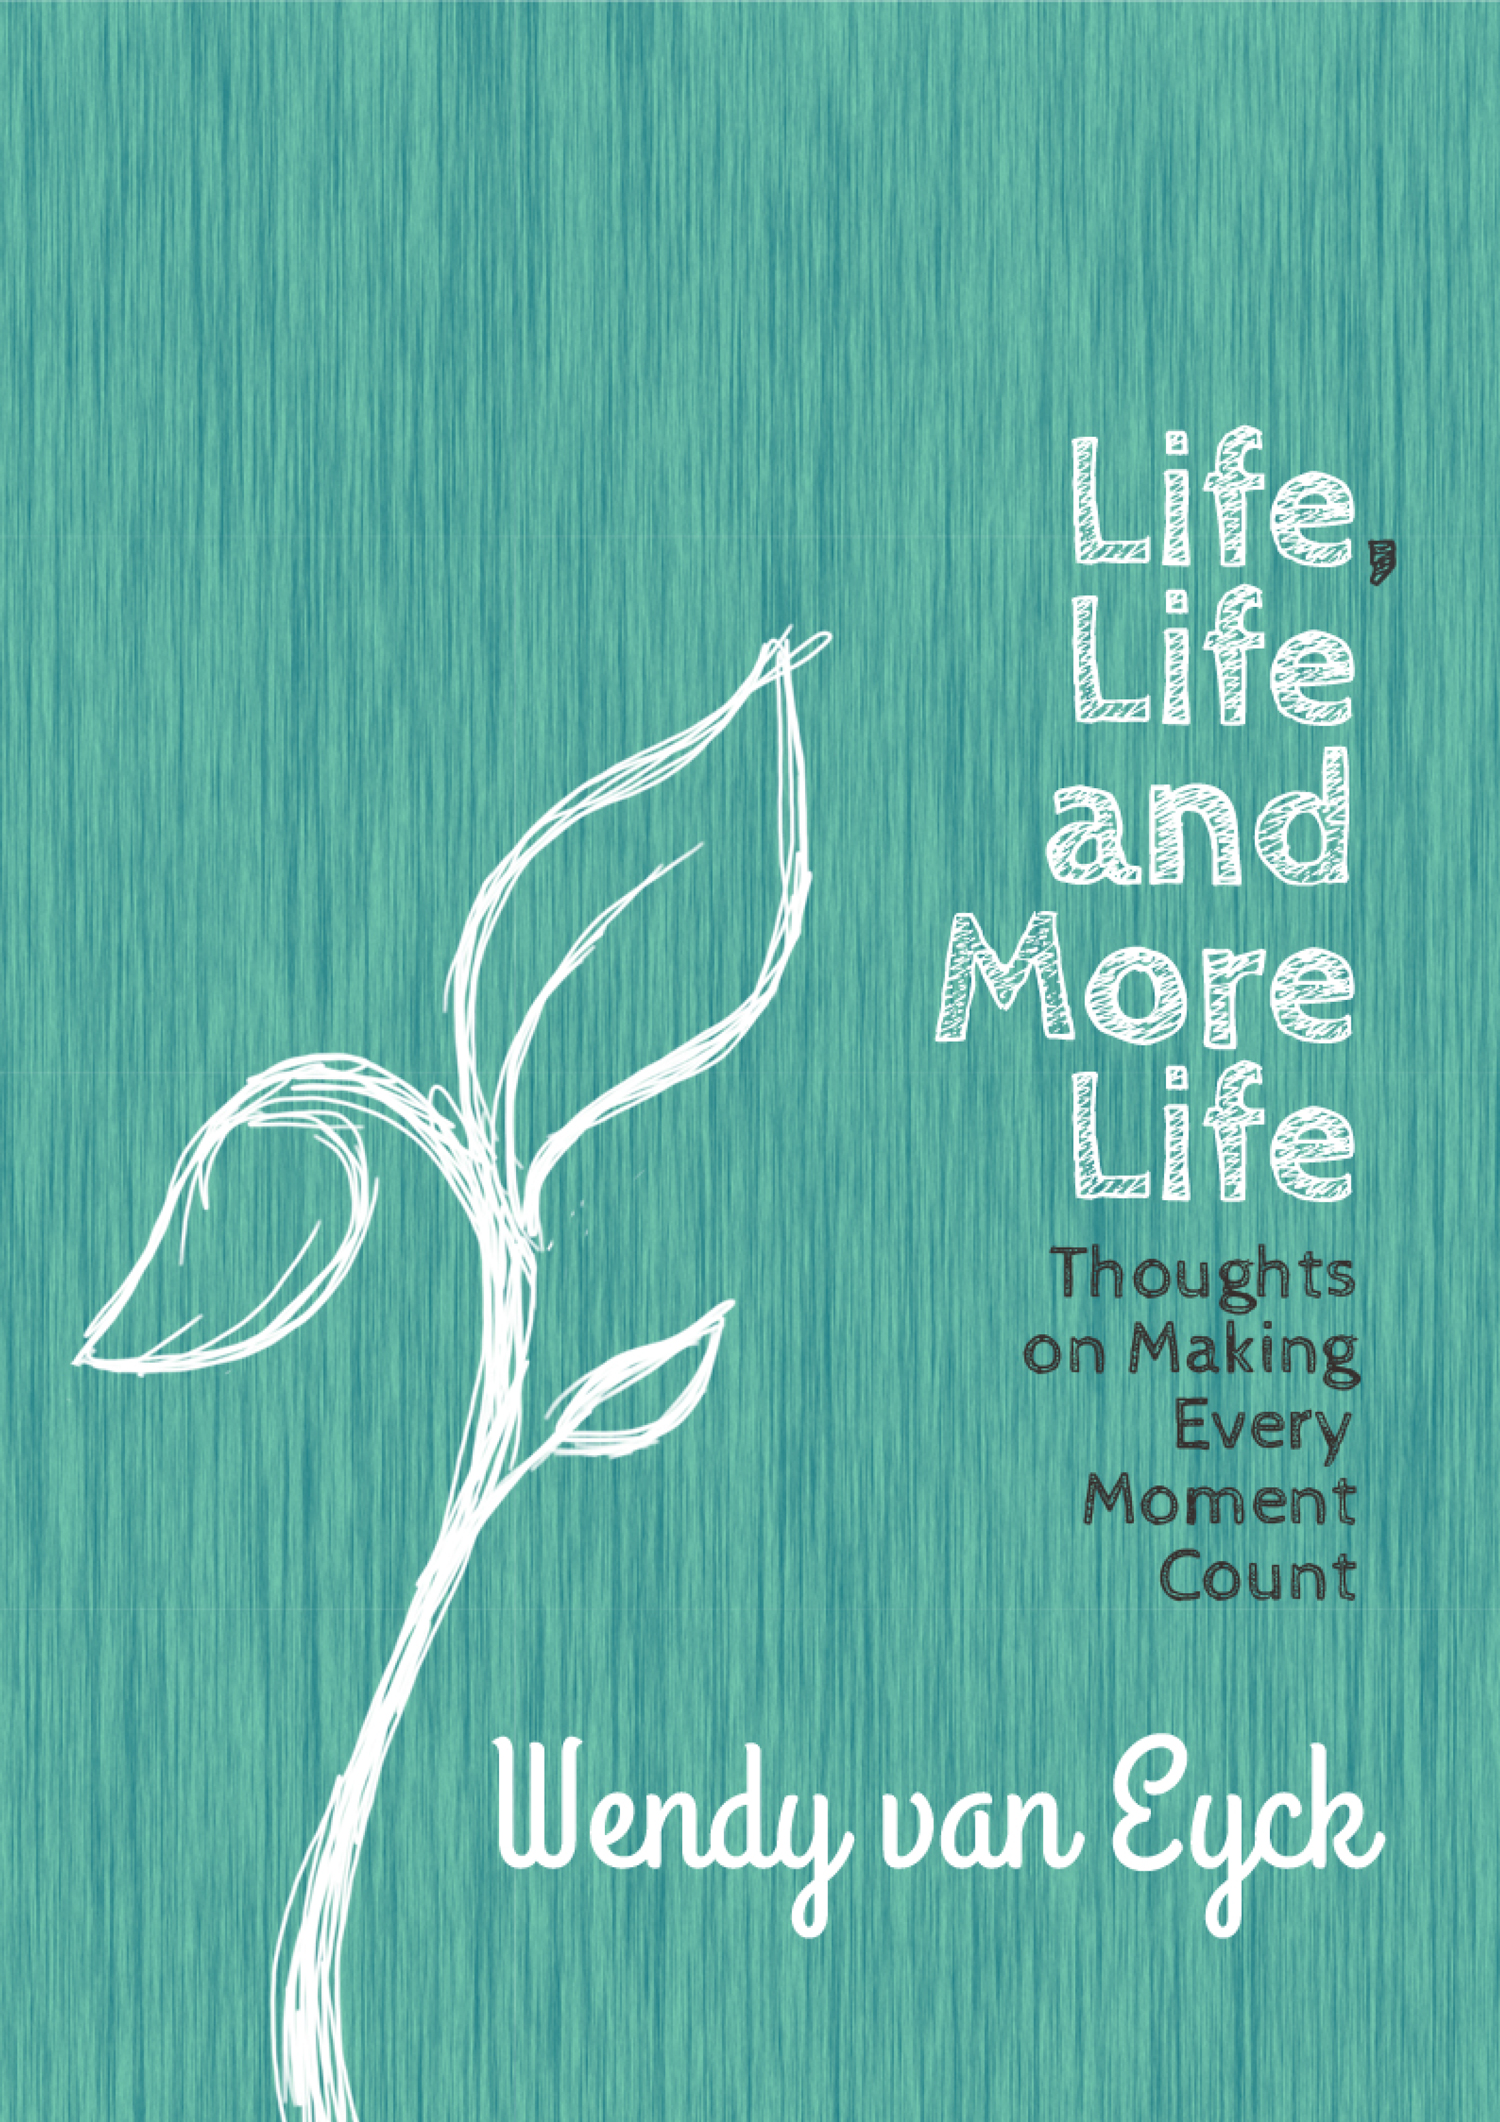 Life, Life and More Life by Wendy van Eyck – a free eBook by one of our writers!